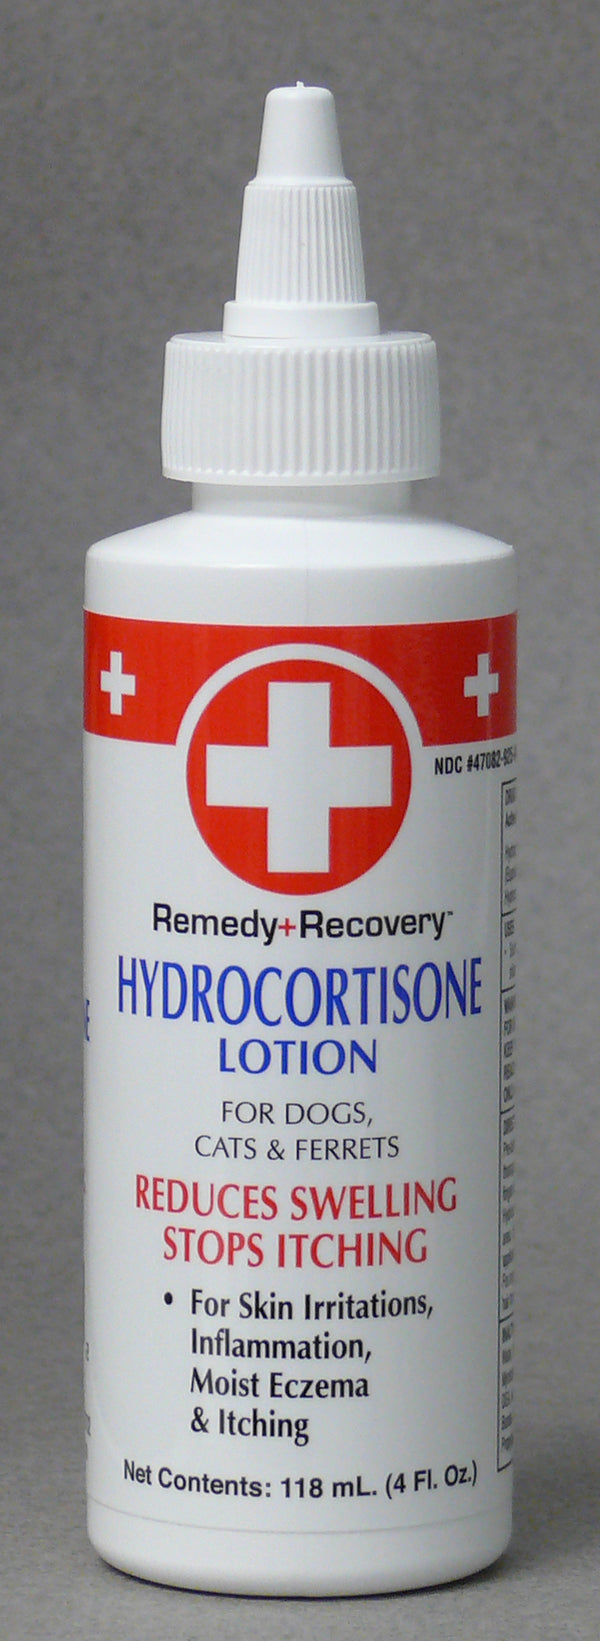 Cardinal Remedy + Recovery Hydrocortisone Lotion for Dogs Cats Pets